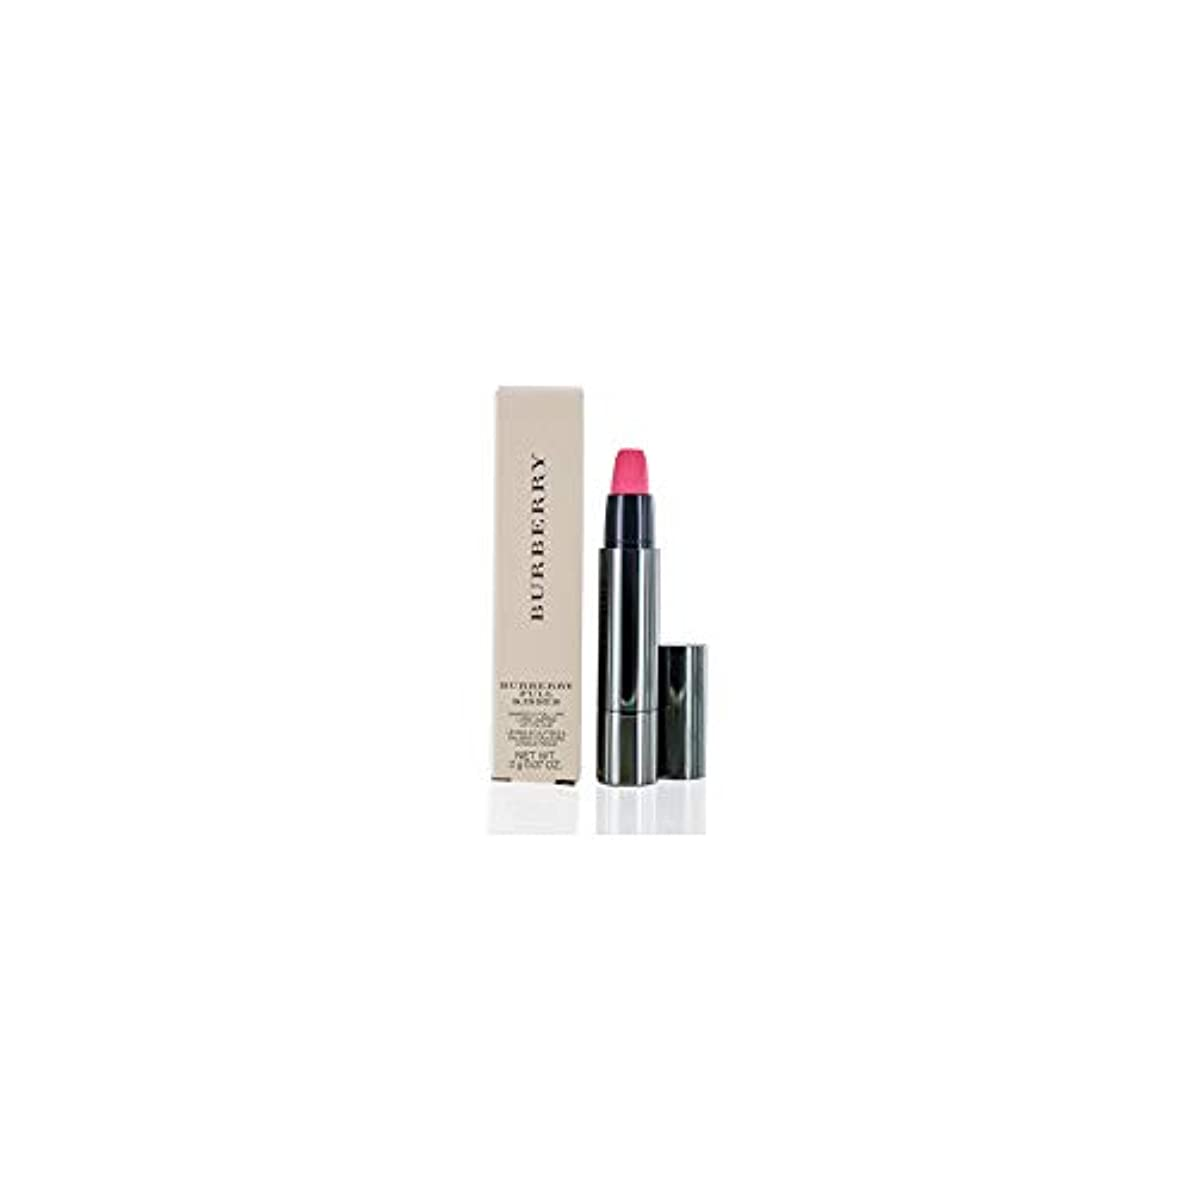 嵐浸した勇敢なバーバリー Burberry Full Kisses Shaped & Full Lips Long Lasting Lip Colour - # No. 513 Peony Rose 2g/0.07oz